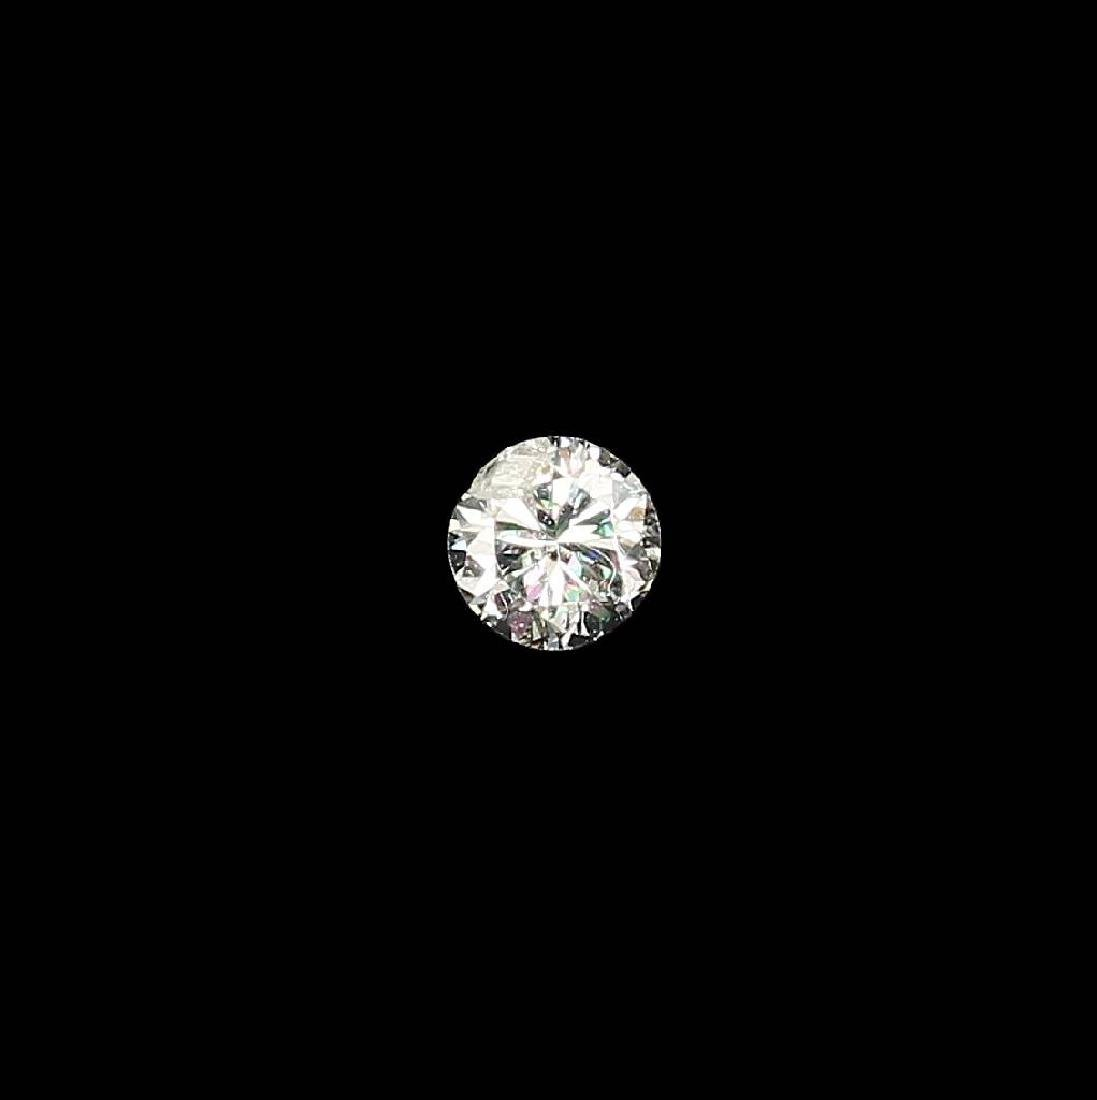 Loose brilliant, approx. 0.50 ct